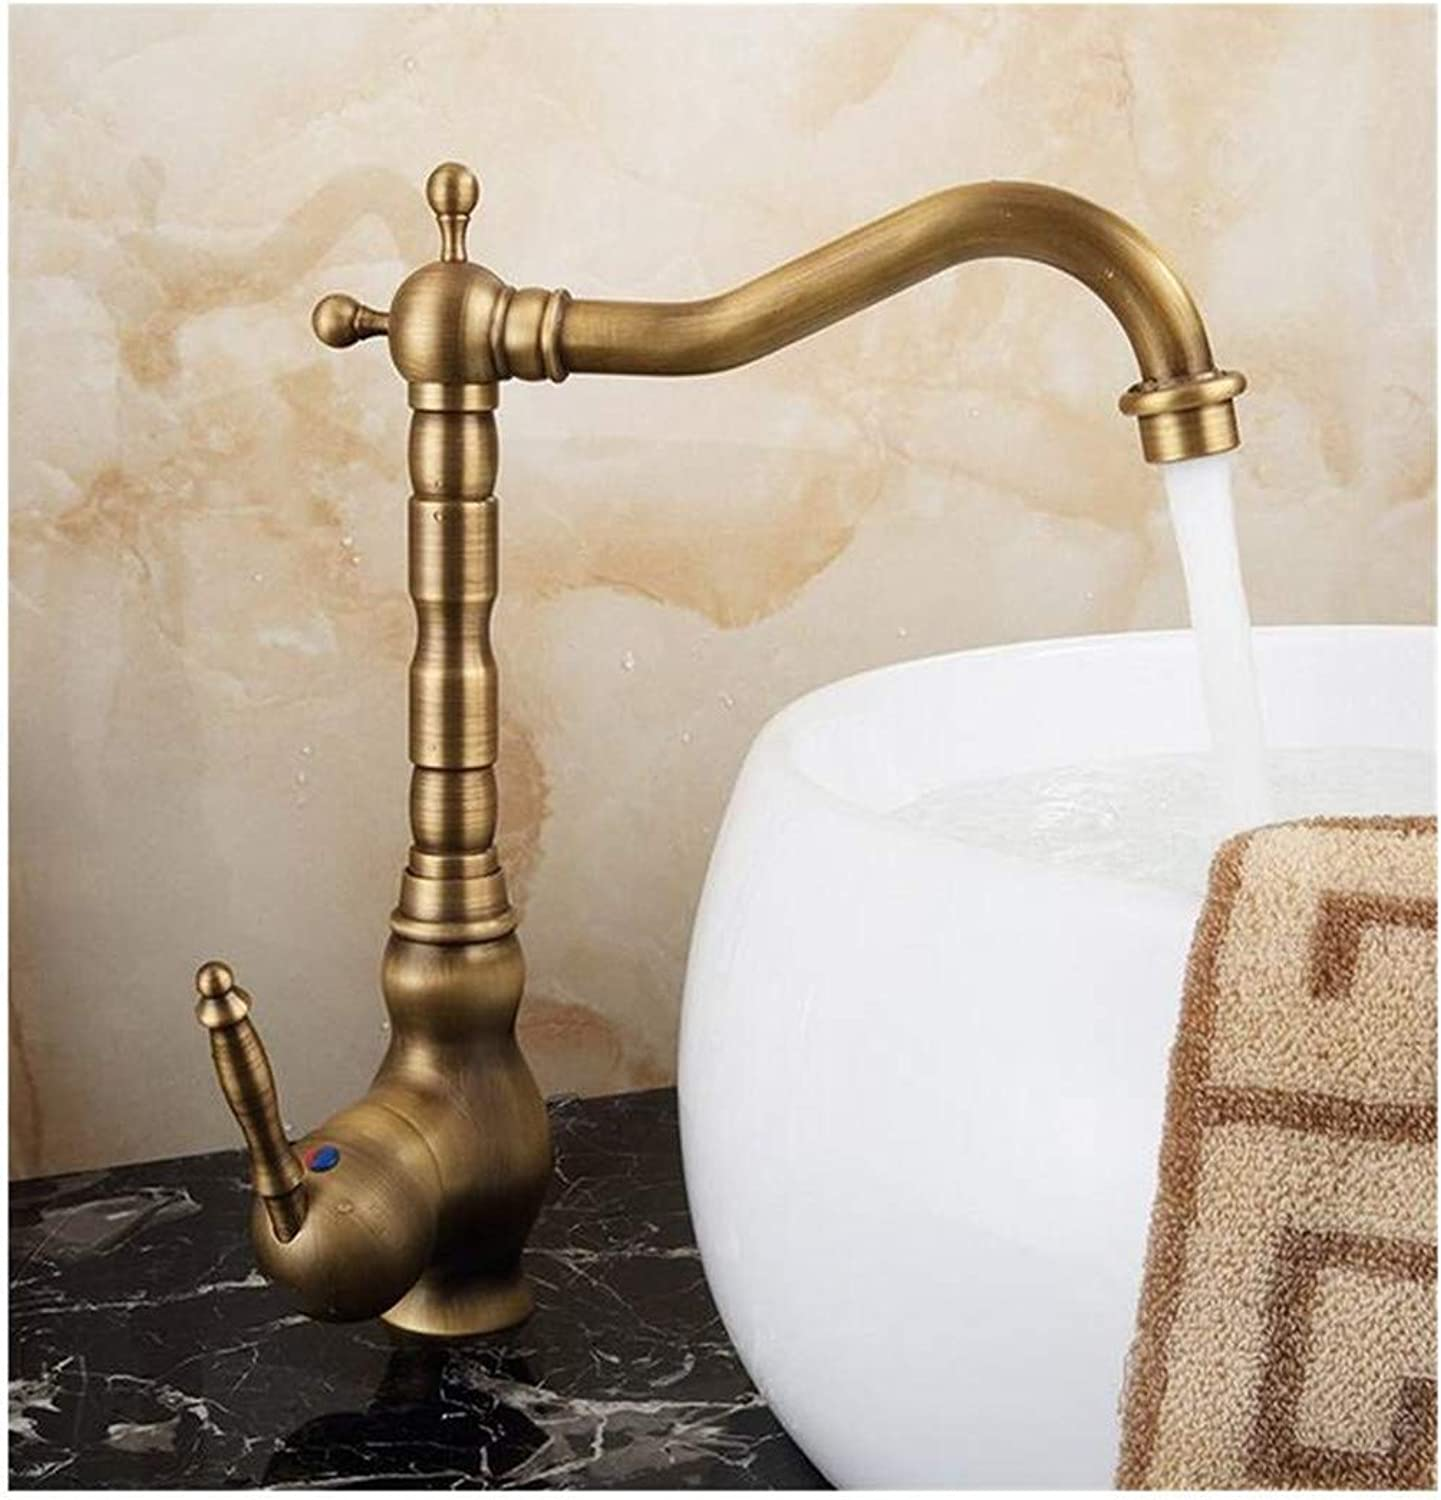 Kitchen Bath Basin Sink Bathroom Taps Basin Mixer Sink Taps Bathroom Kitchen Sink Taps Brass Copper Ctzl2854